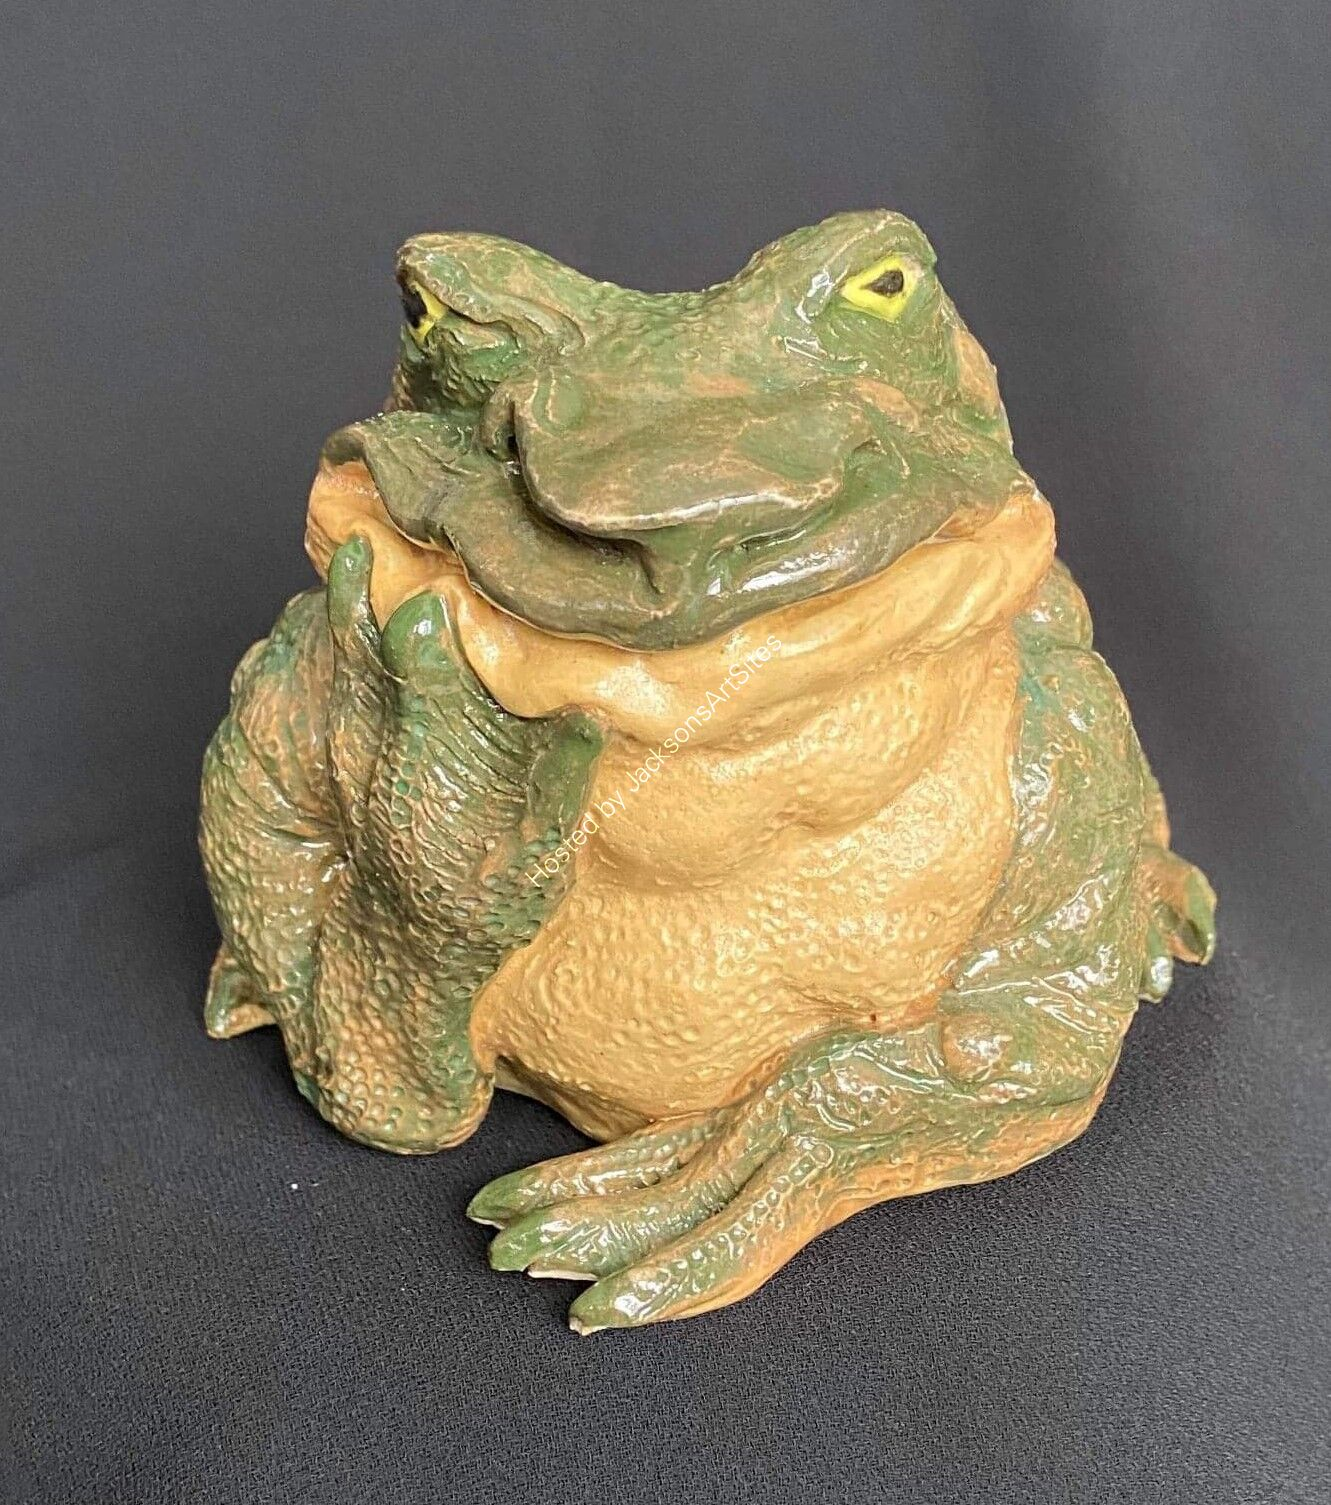 Thinking Mans Toad